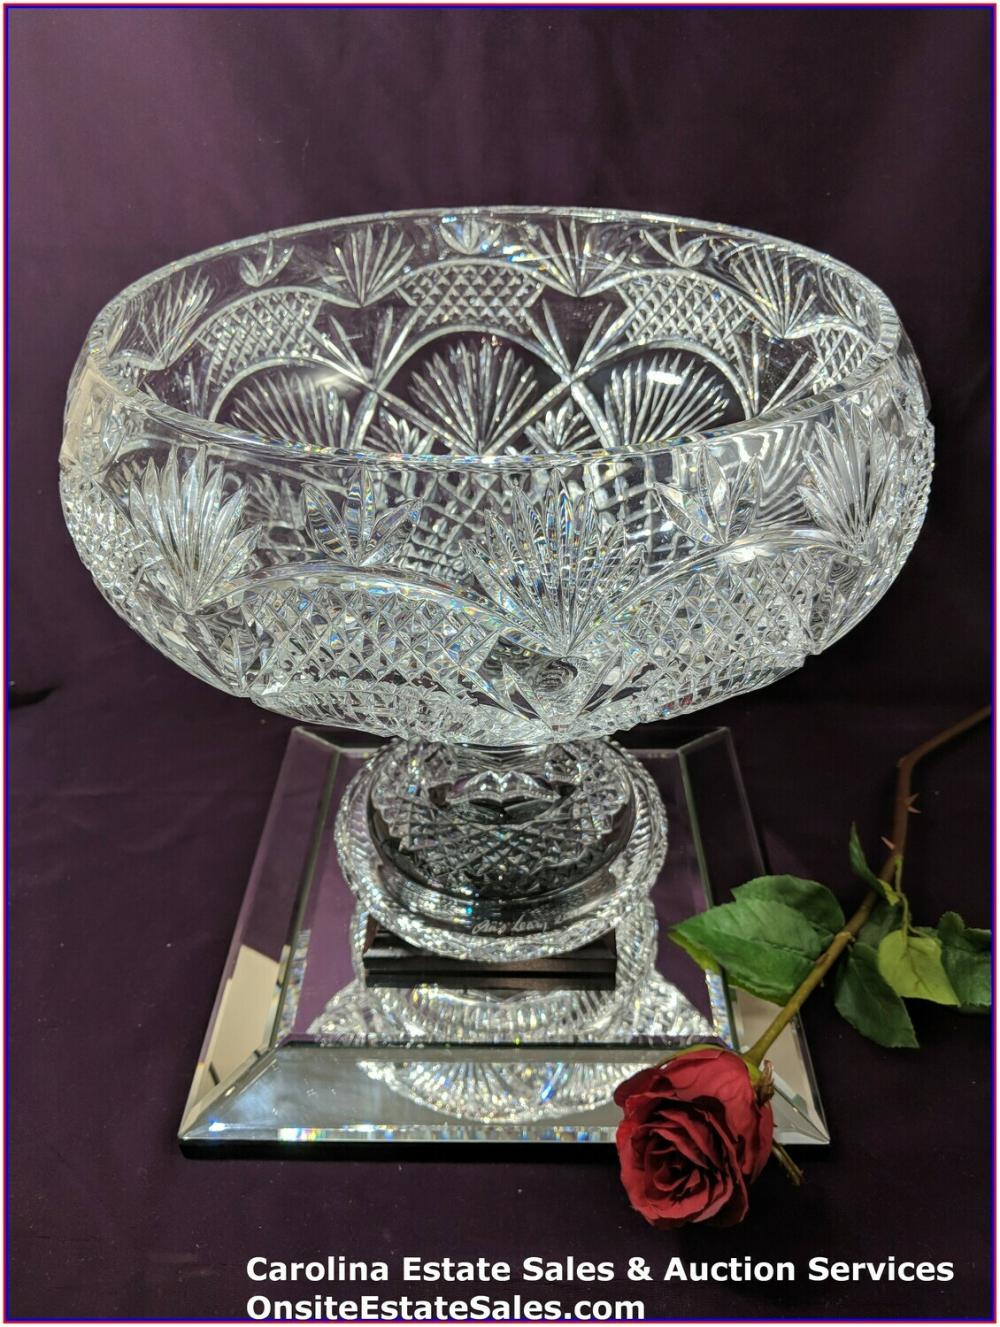 Waterford Crystal Jim O'Leary Punch Bowl